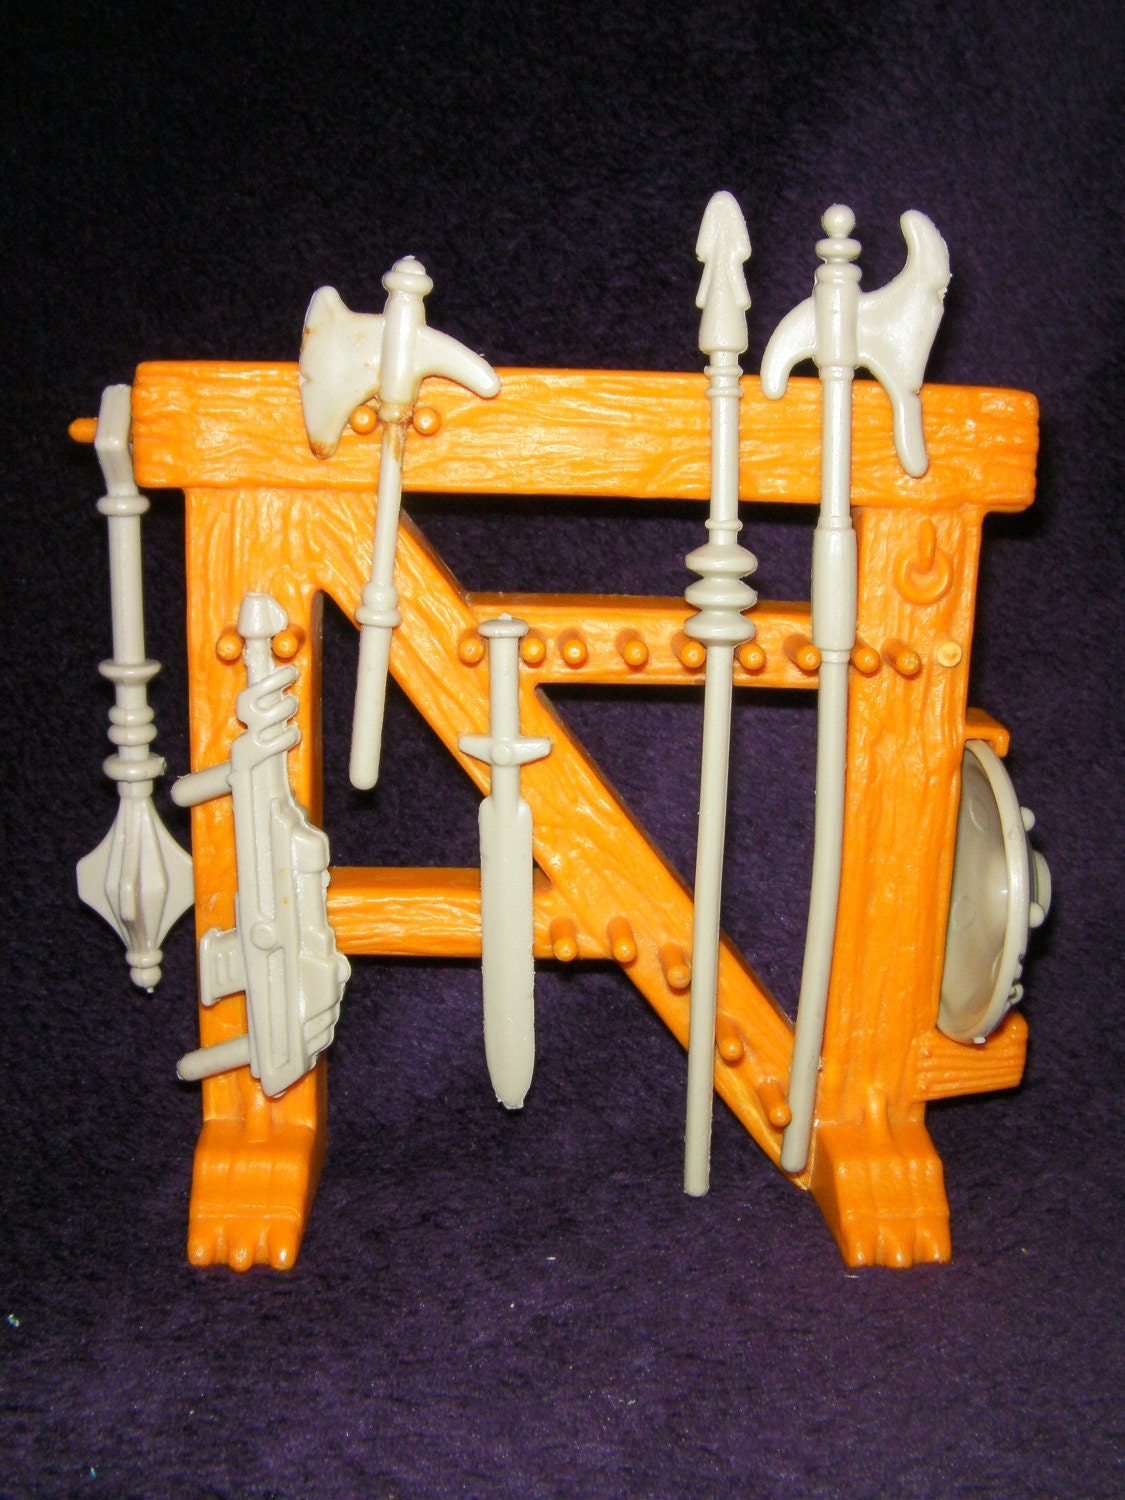 Vintage 1980s Retro HeMan SwordArmor StandHolder  Toy Figure Masters of the Universe By Mattel